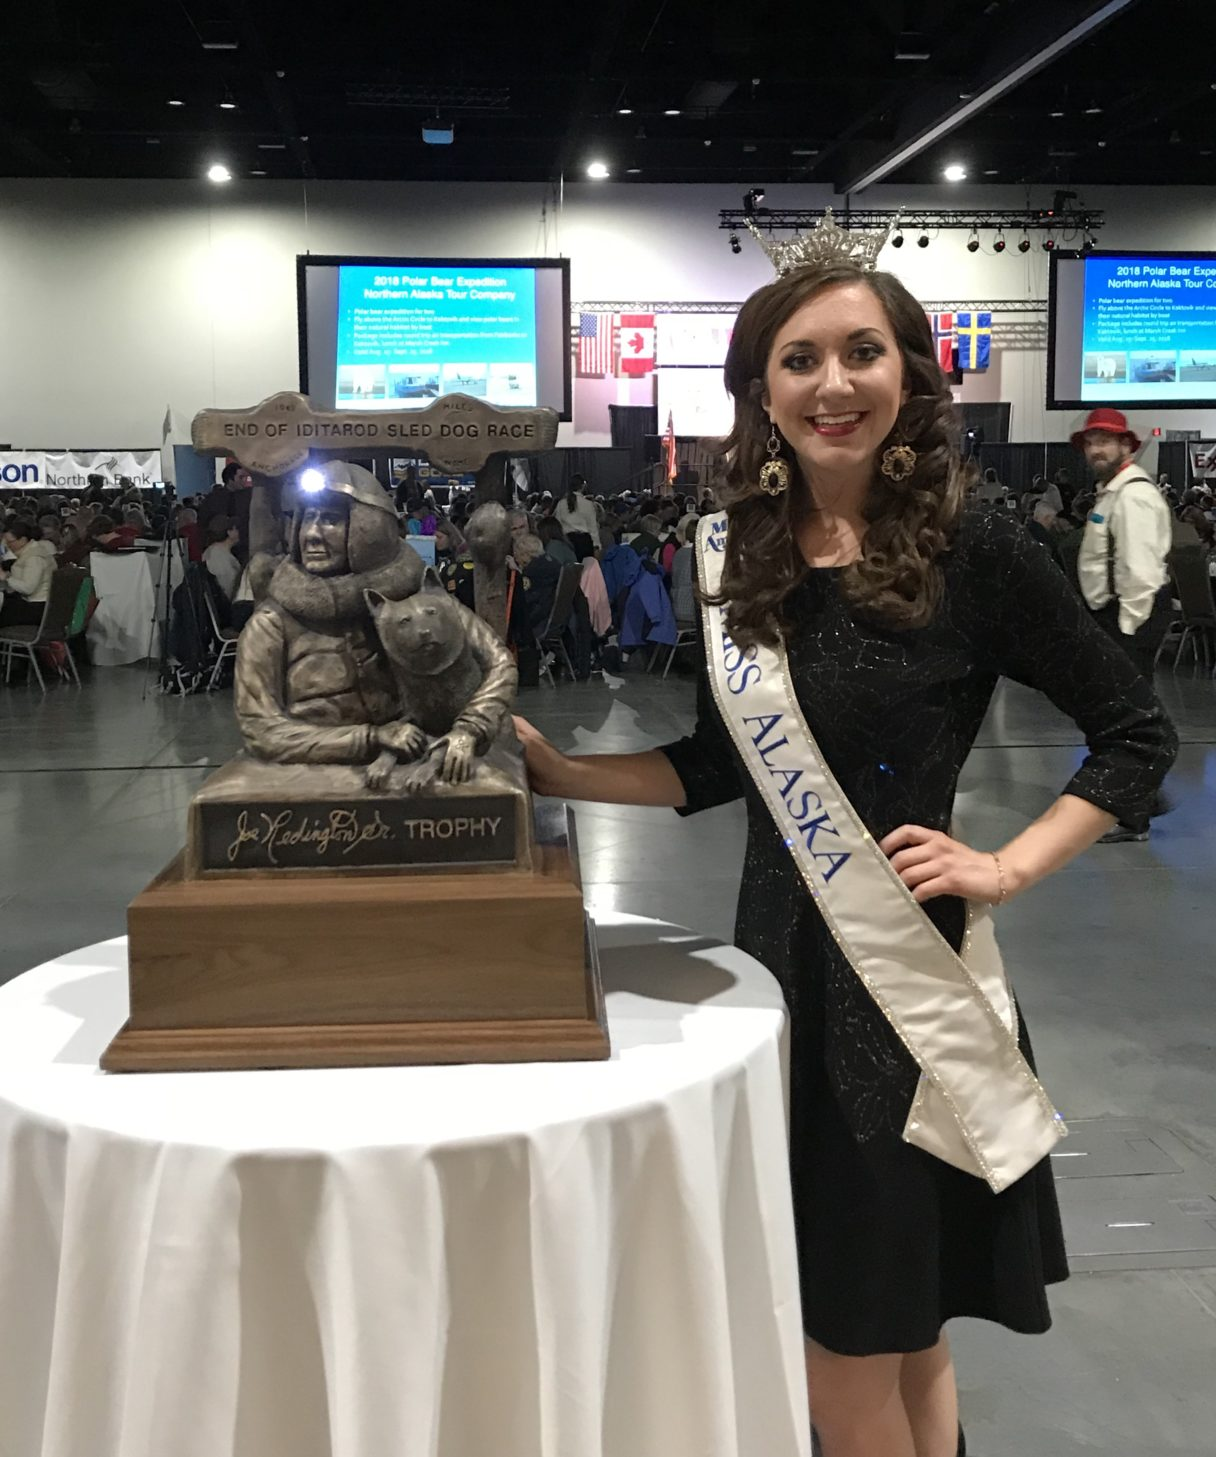 Miss Alaska 2017, Angelina Klapperich, poses next to the trophy (bearing a likeness of the late Joe Redington, Sr.) that will be given to the 2018 Iditarod champion.